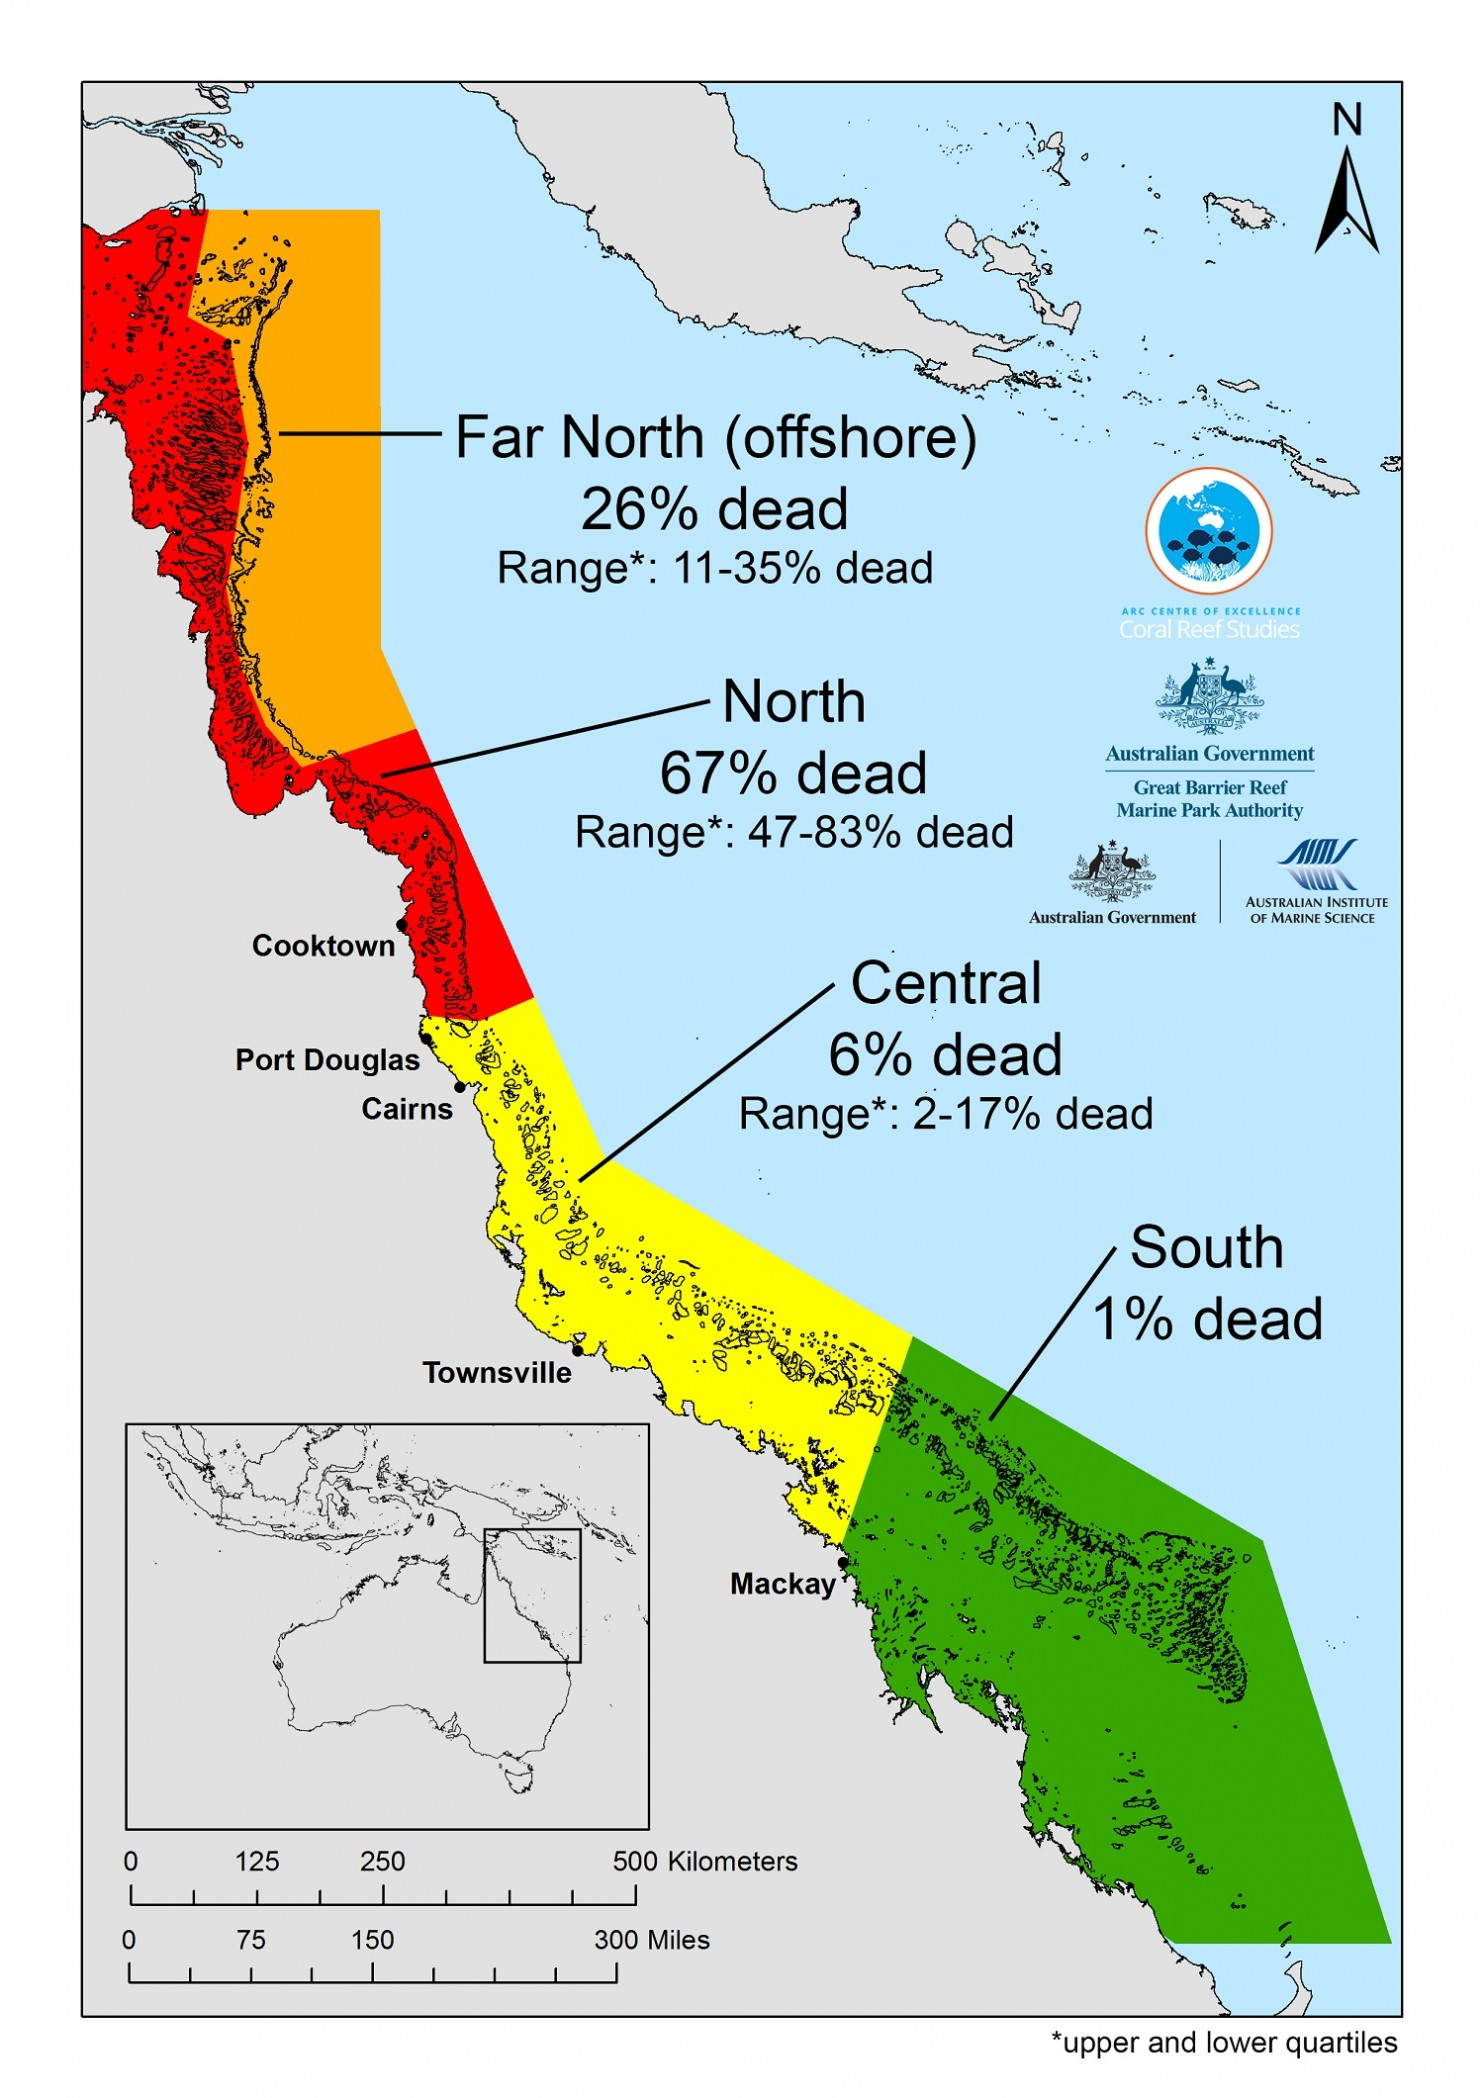 Worksheet. The Great Barrier Reef has suffered the worst coral dieoff on